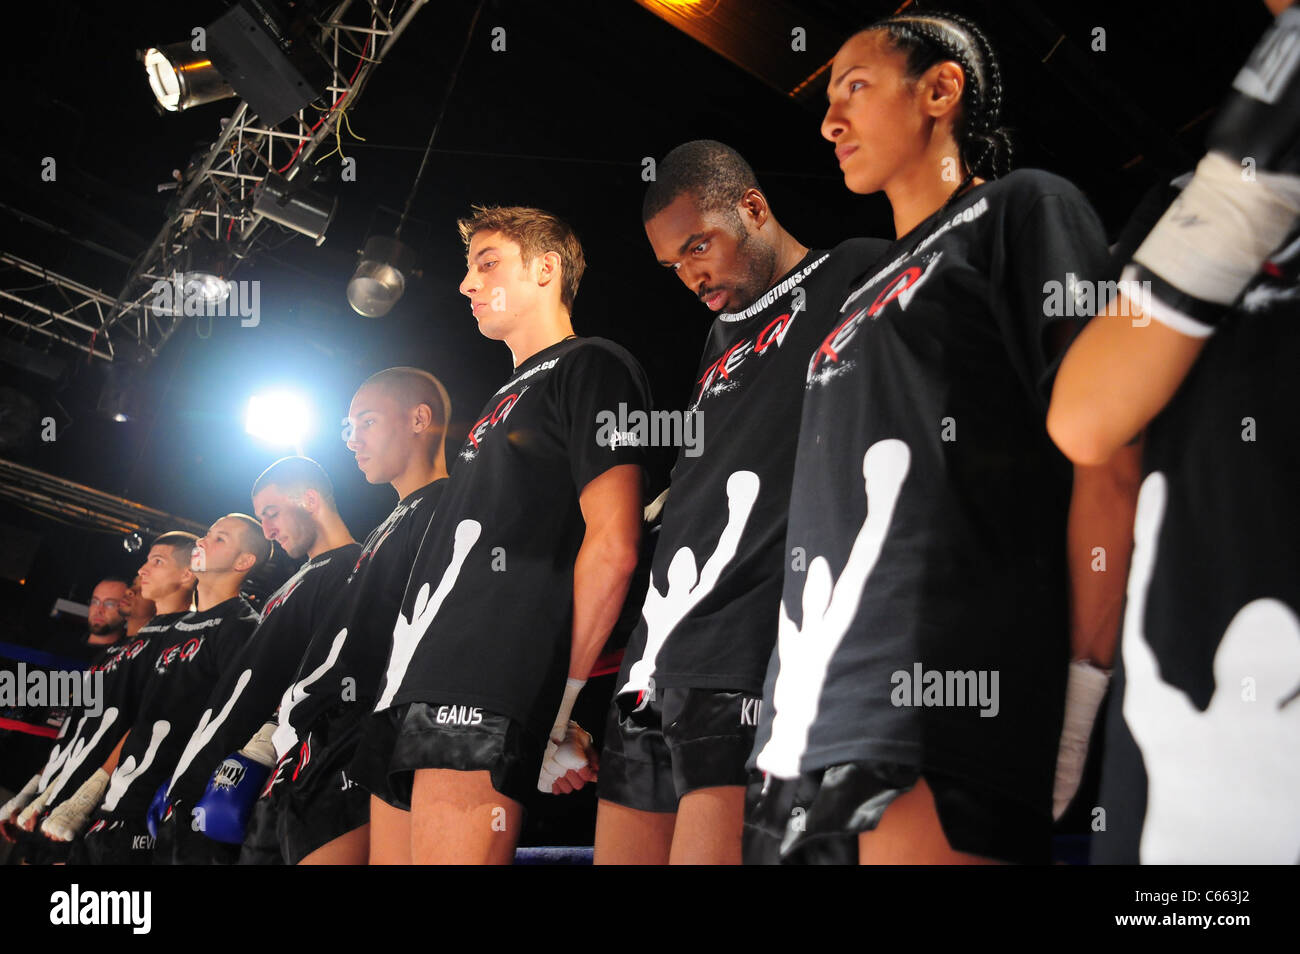 Fighters at a public appearance for TAKE ON SHOW Presents $10,000 Professional Muay Thai Kickboxing Tournament, - Stock Image